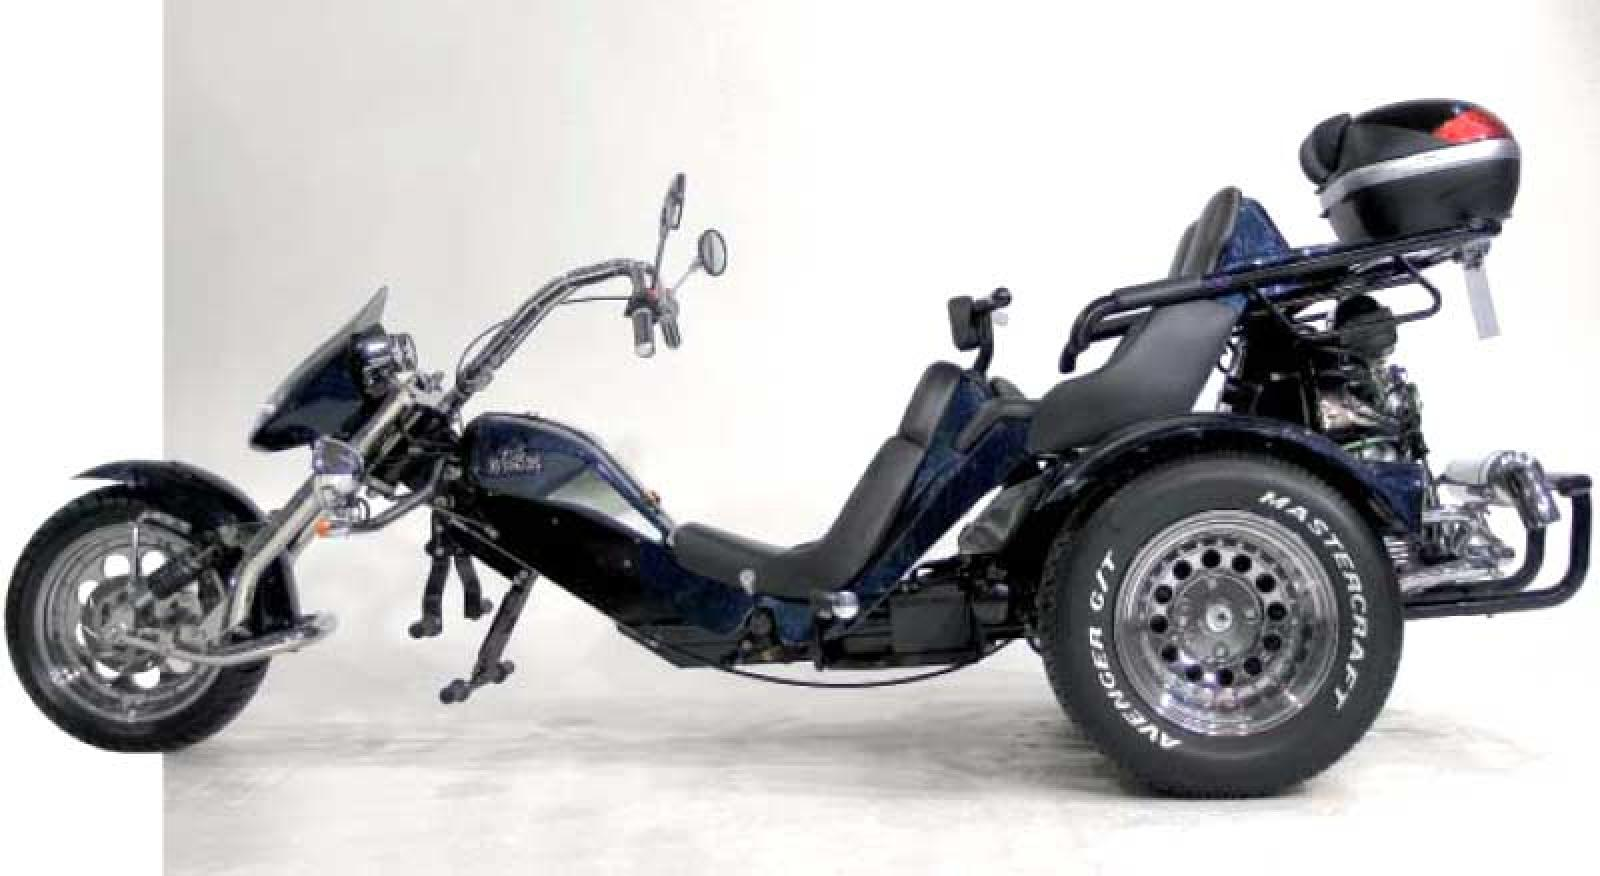 2010 boom trikes classic chopper moto zombdrive com. Black Bedroom Furniture Sets. Home Design Ideas